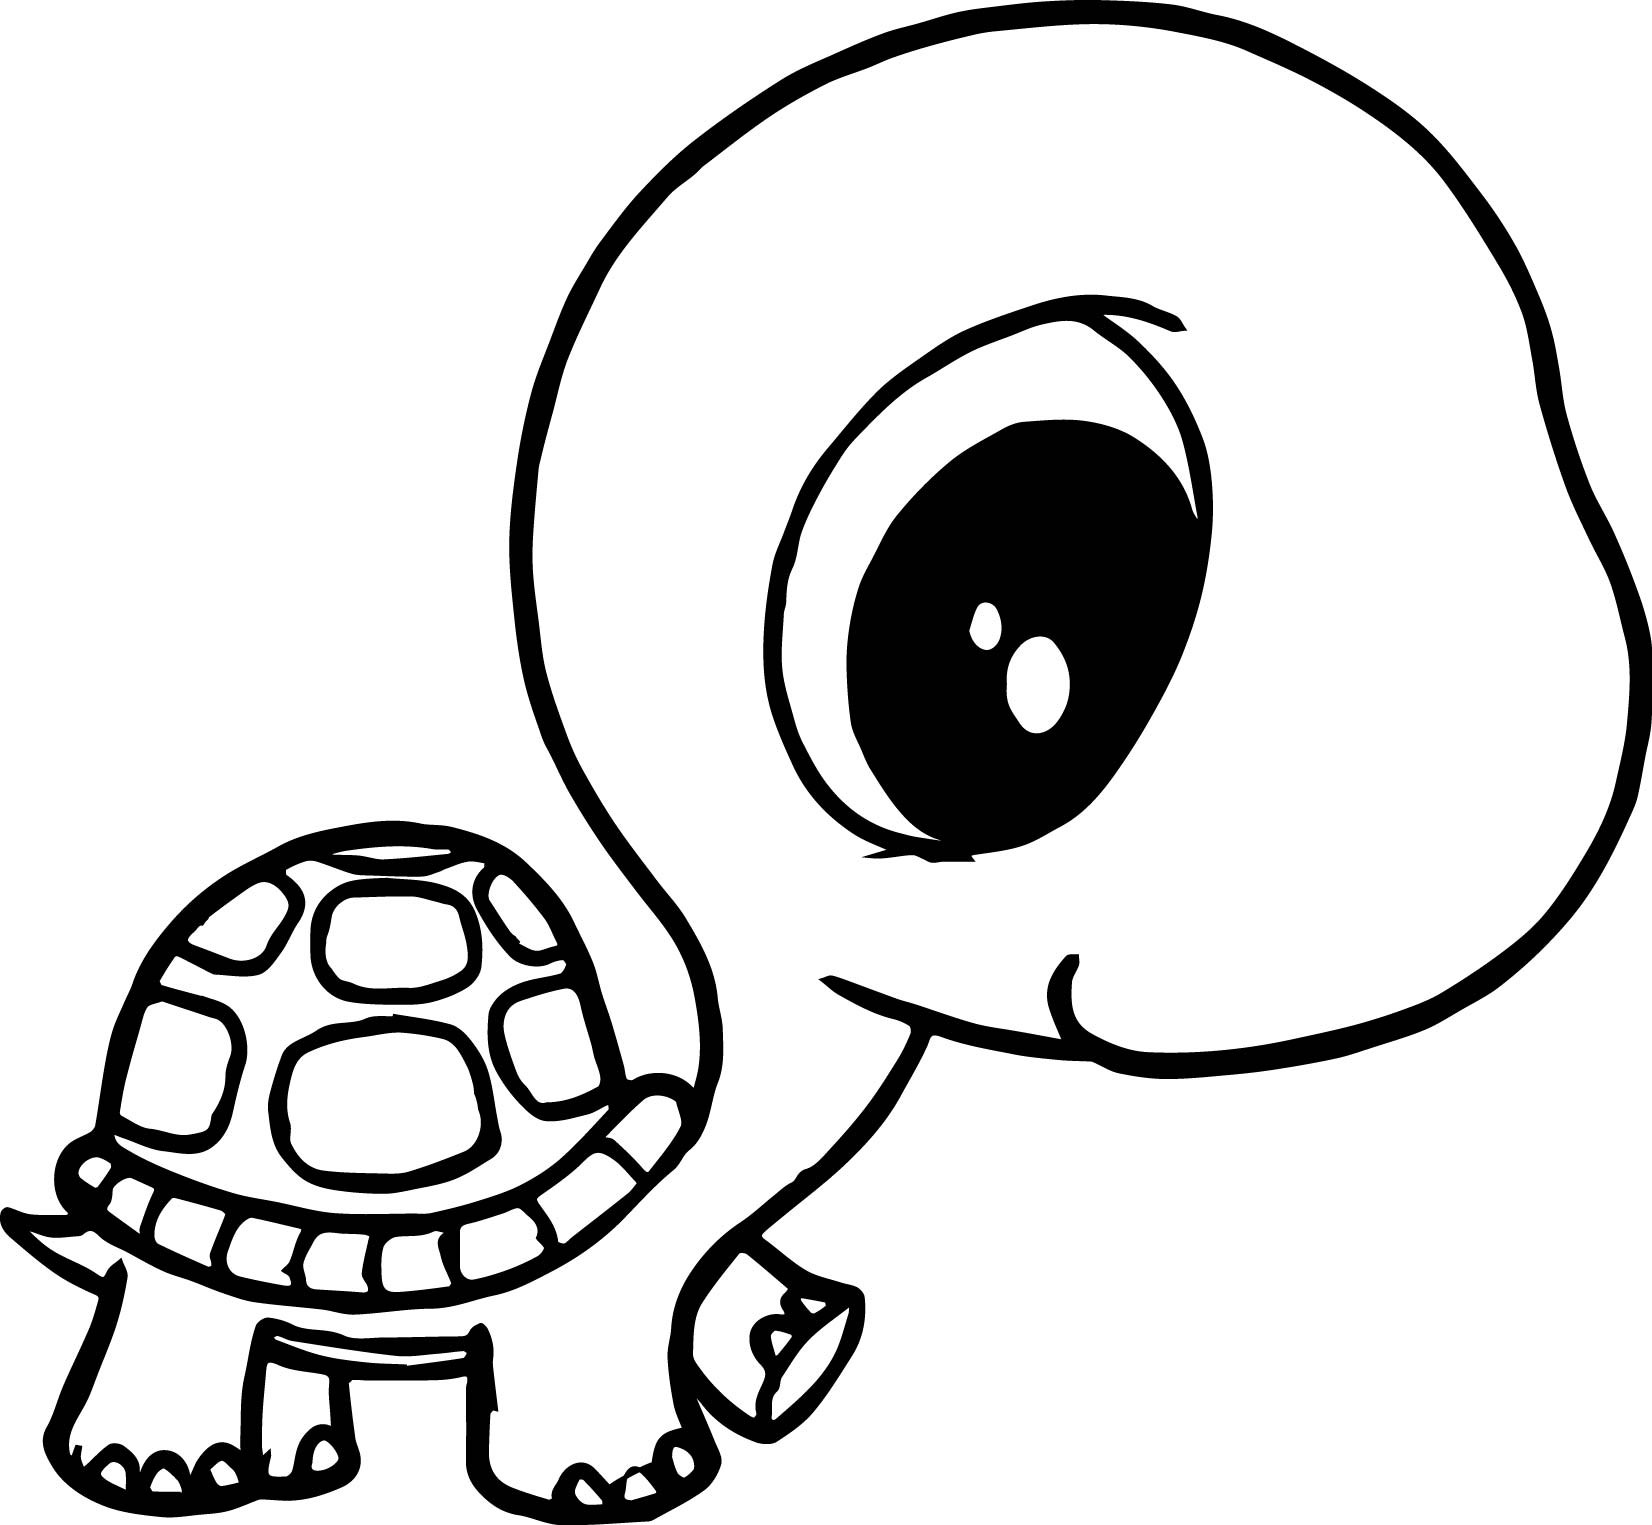 1652x1525 Turtle Coloring Pages Free Draw To Color